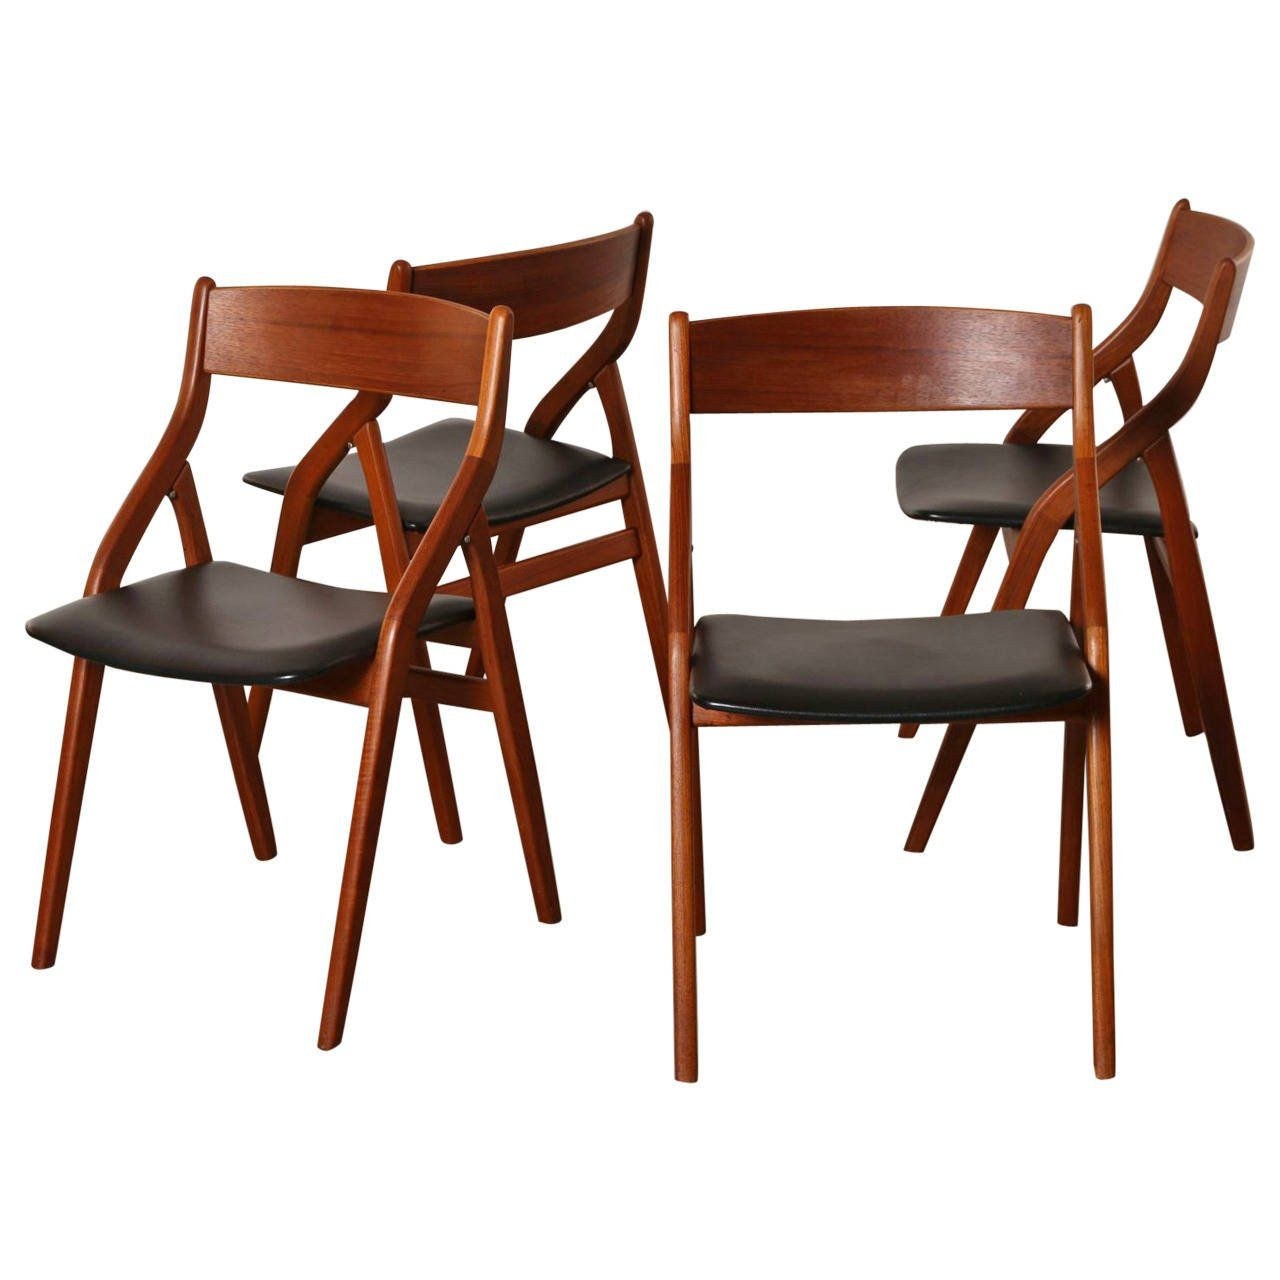 Designer Küchenstühle Great Foldable Dining Chairs 30 About Remodel Kitchen Decor Ideas With Foldable Dining Chairs | Folding Dining Chairs, Dining Chairs, Antique Chairs